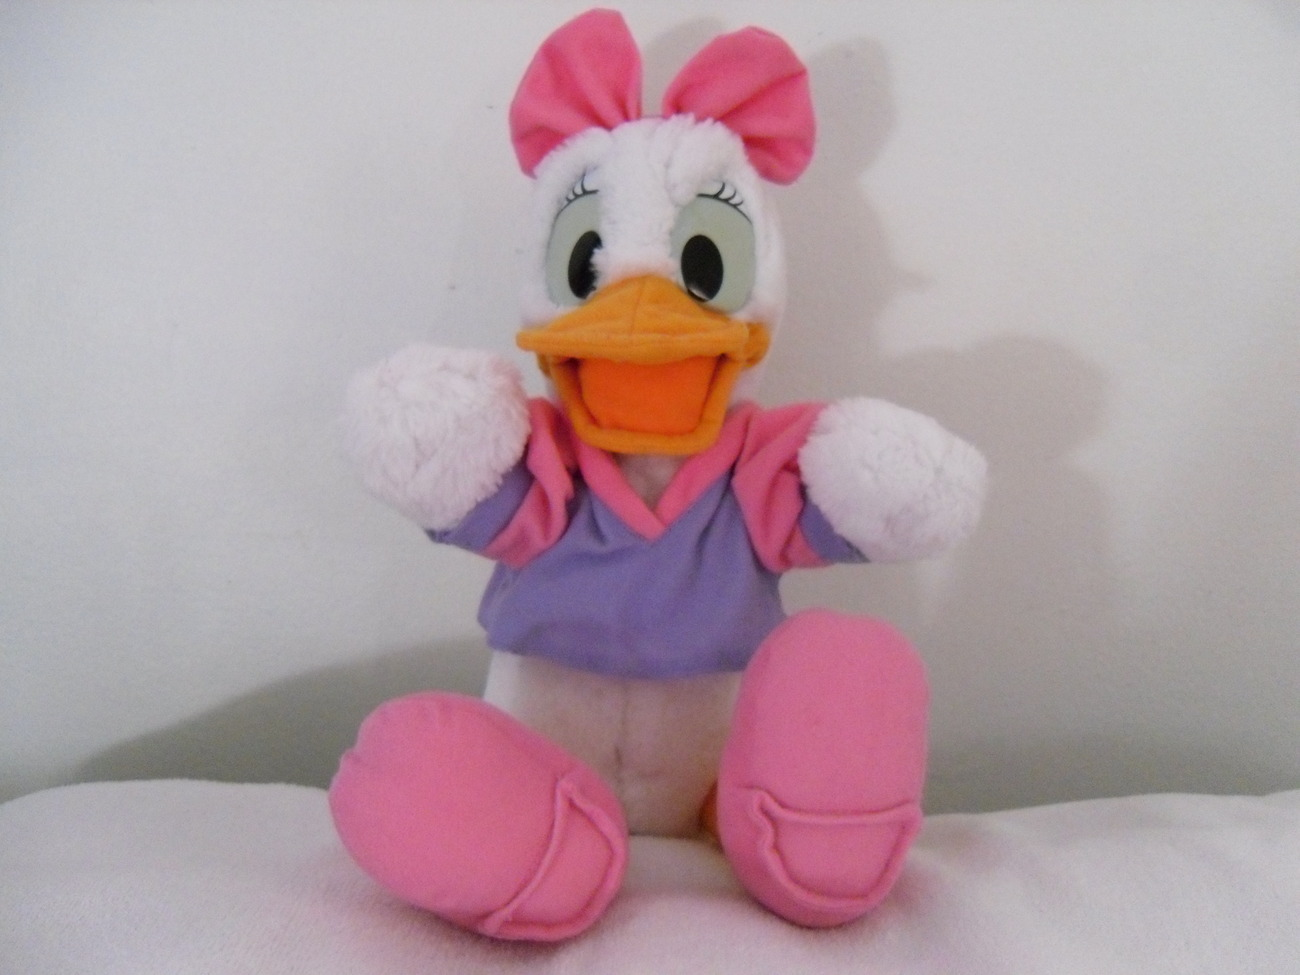 Daisy_duck_plush_toy_front